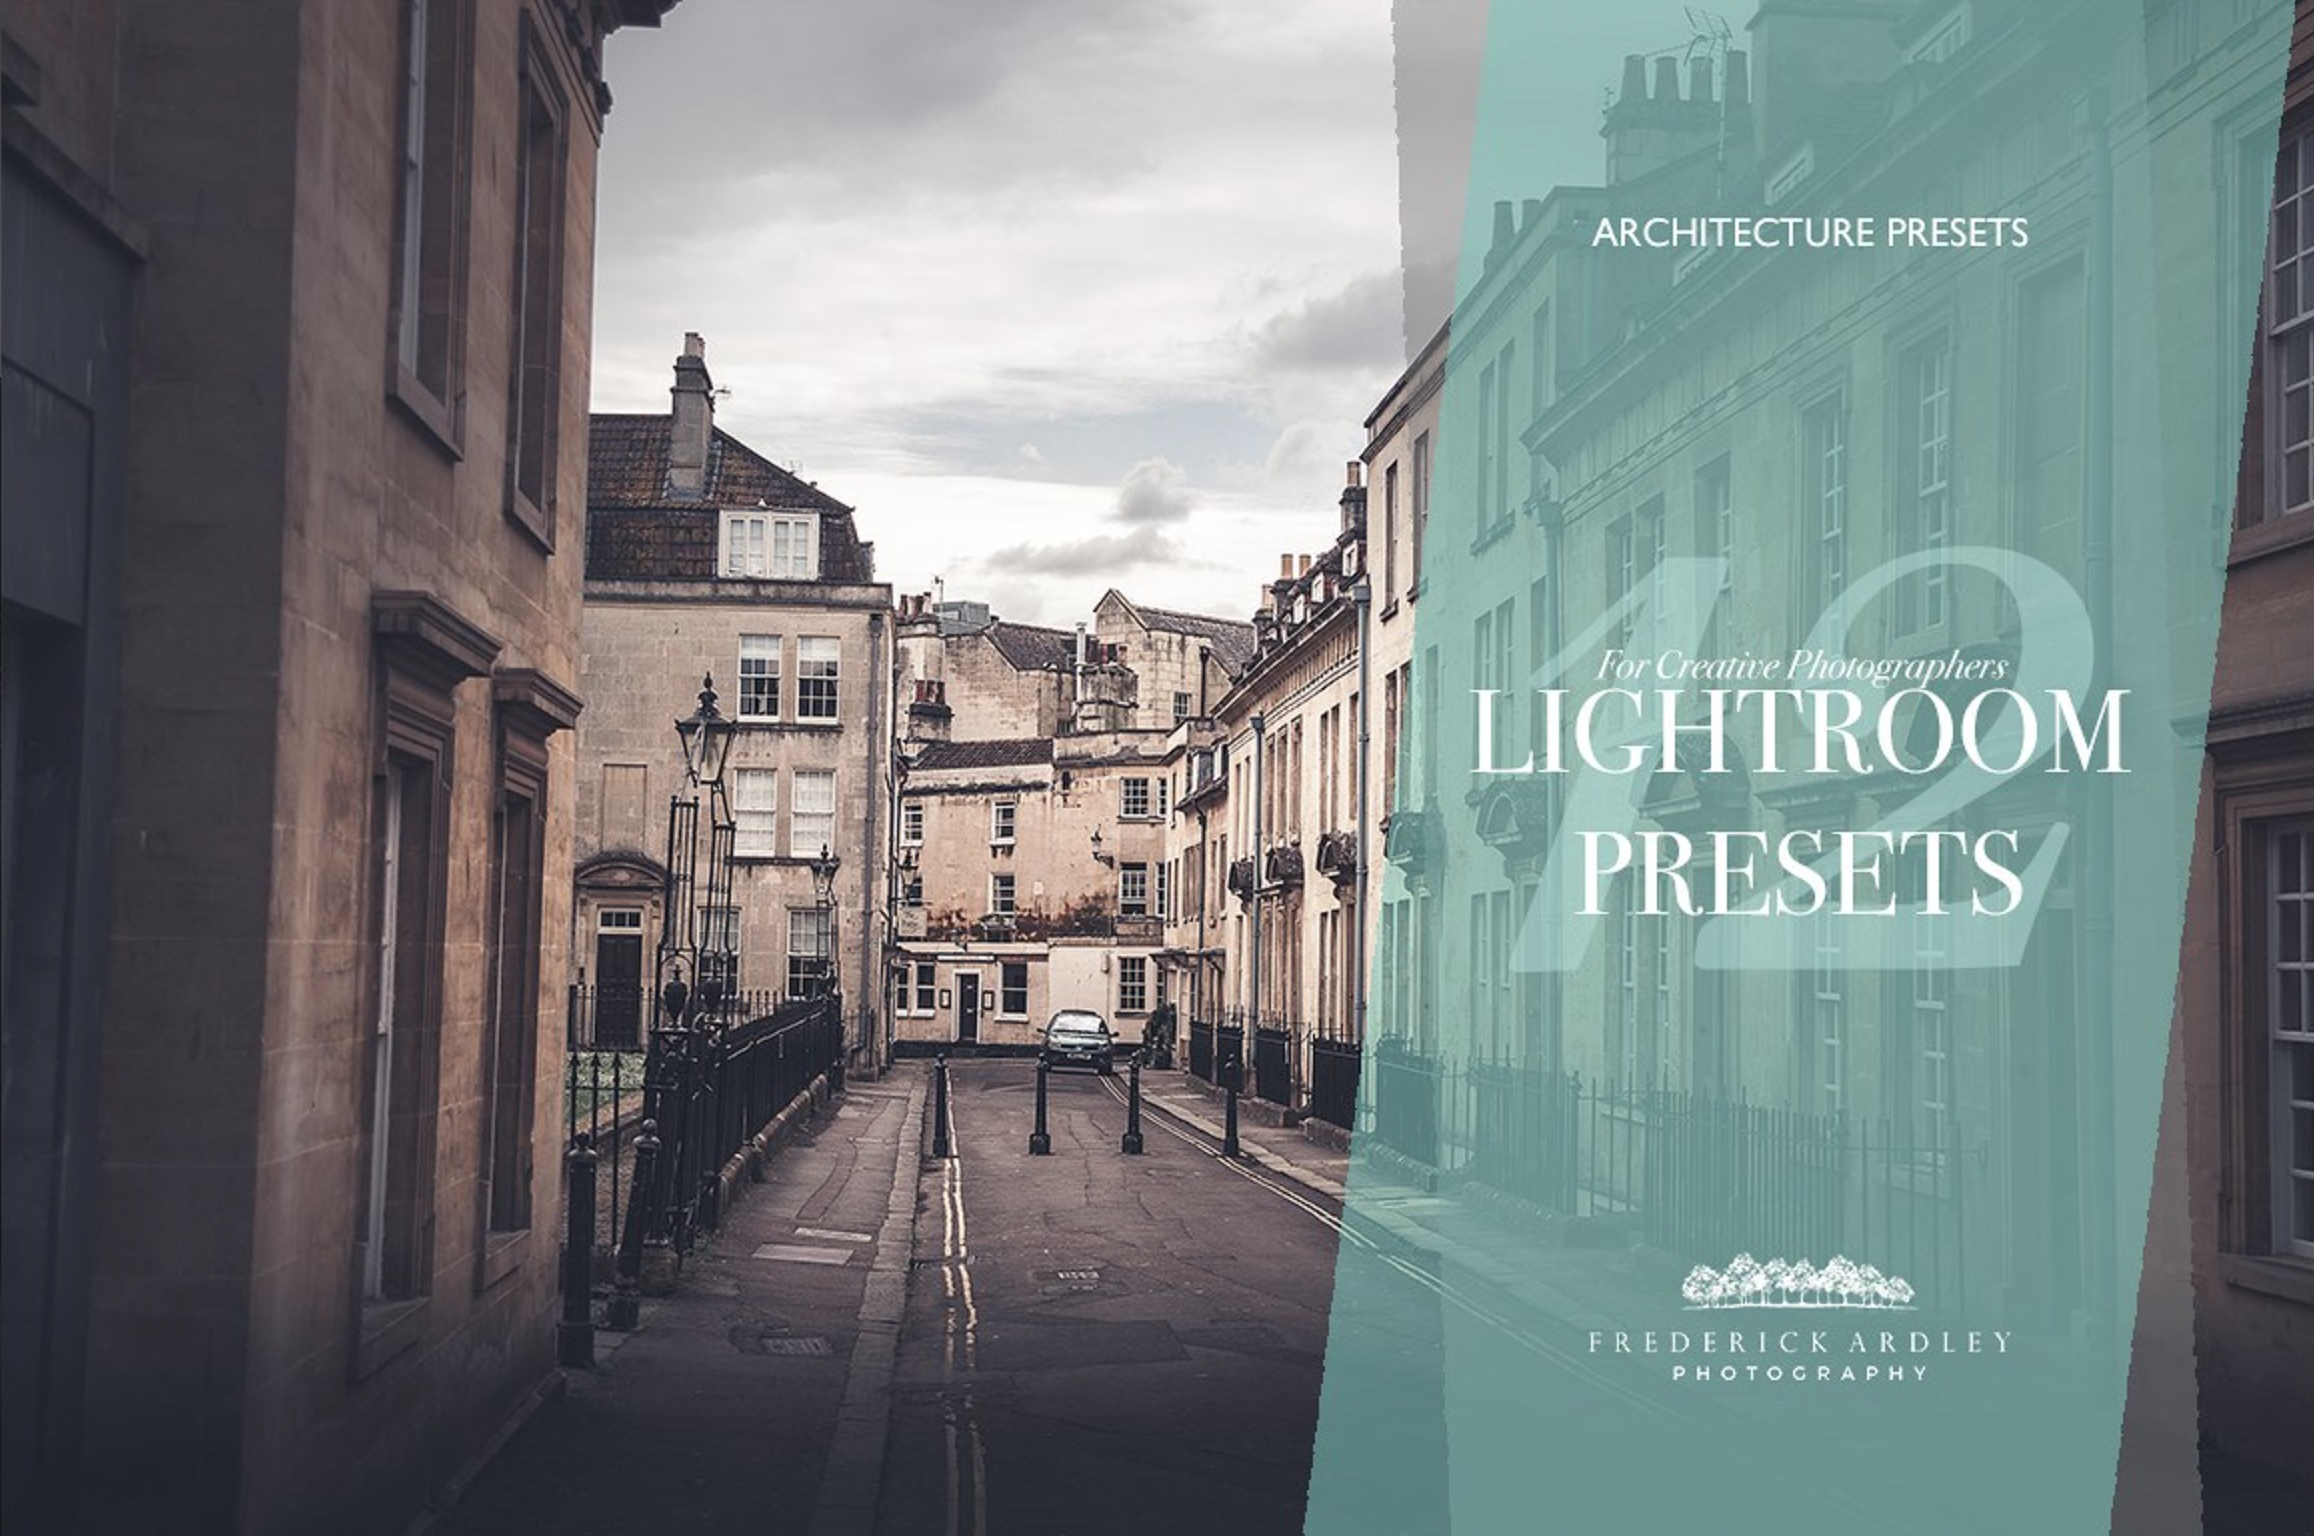 12 Lightroom Presets: Architecture